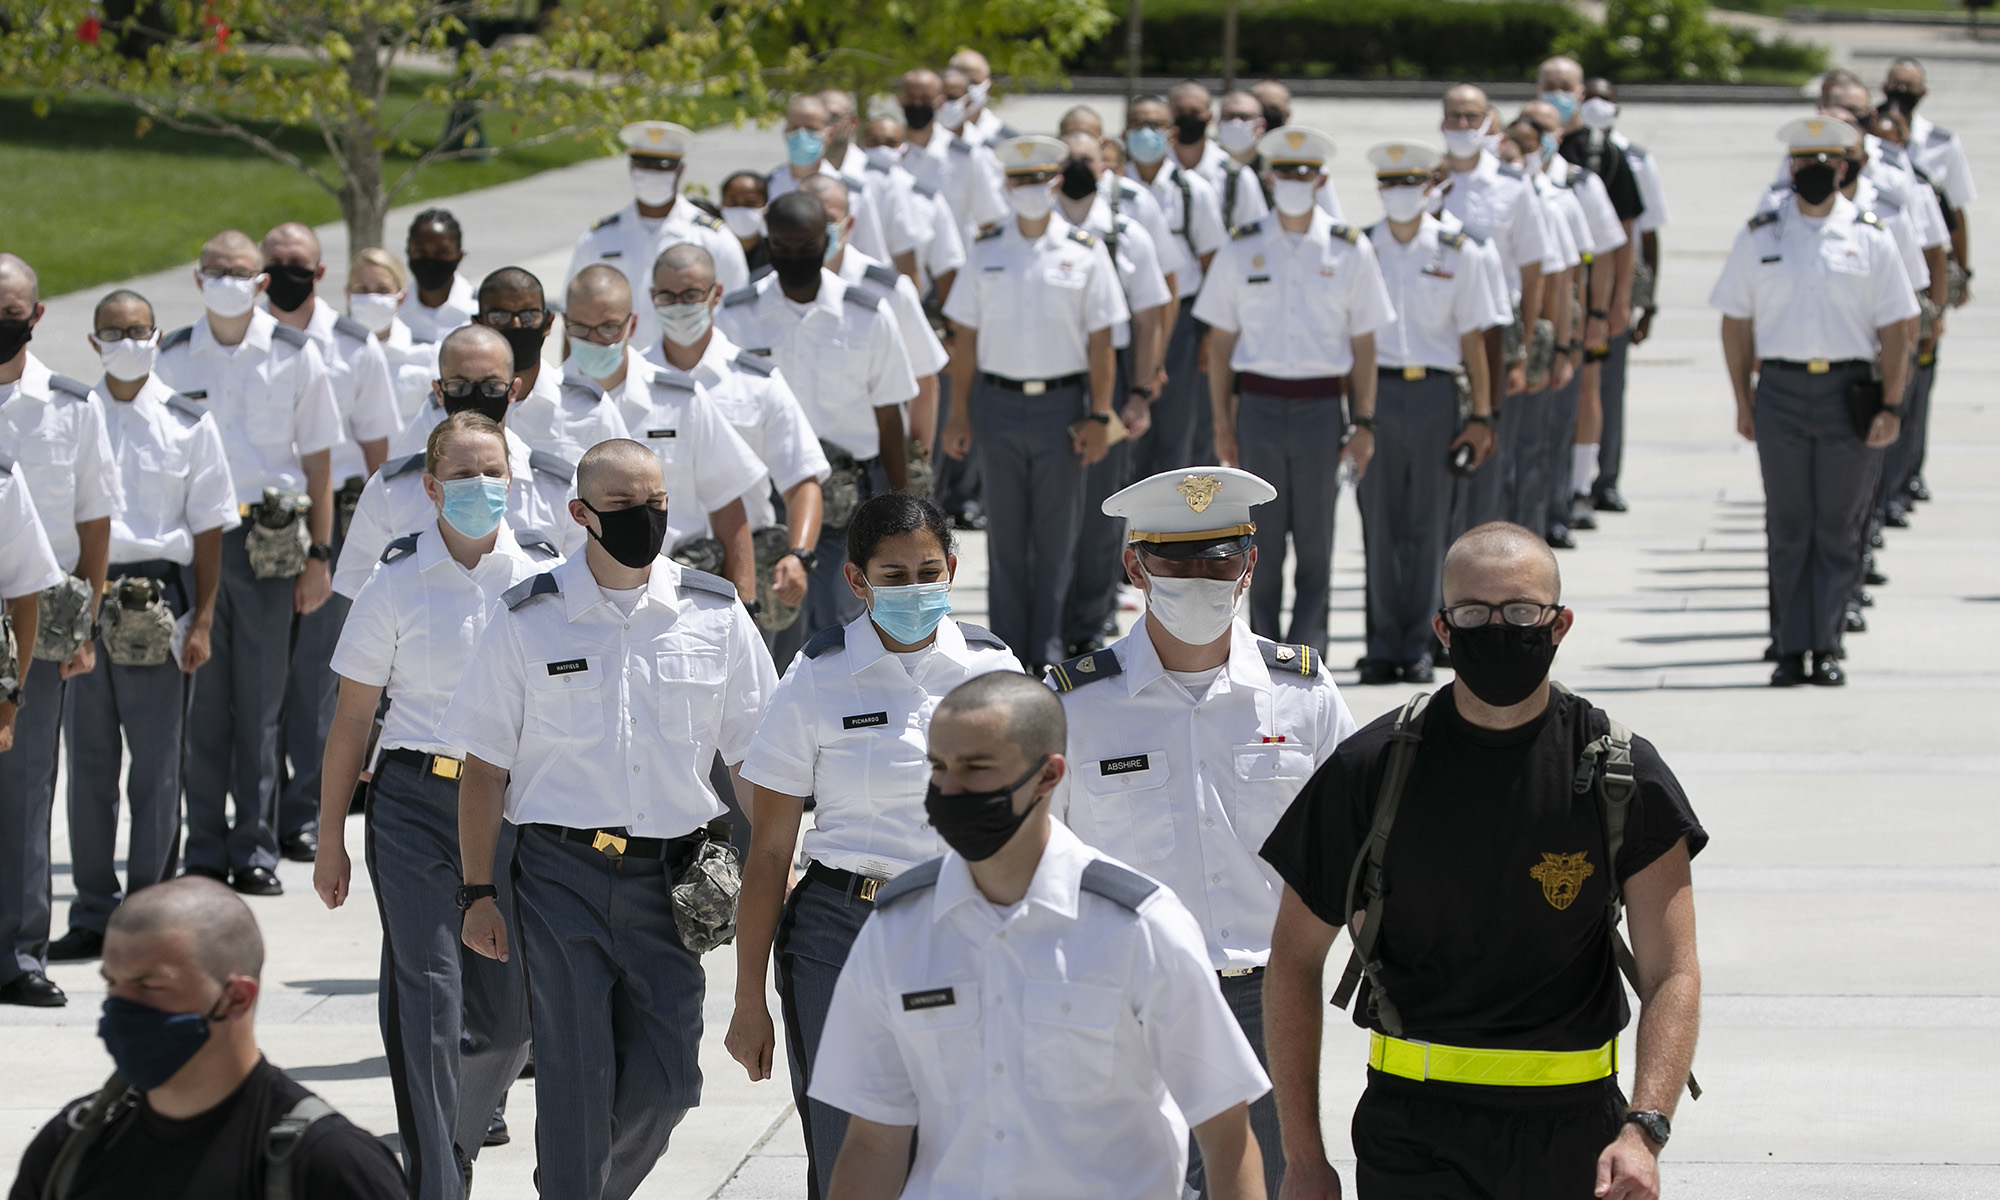 A formation of new cadets marches on July 13, 2020, at the U.S. Military Academy in West Point, N.Y. The Army is welcoming more than 1,200 candidates from every state. Candidates will be COVID-19 tested immediately upon arrival, wear masks, and practice social distancing. (Mark Lennihan/AP)